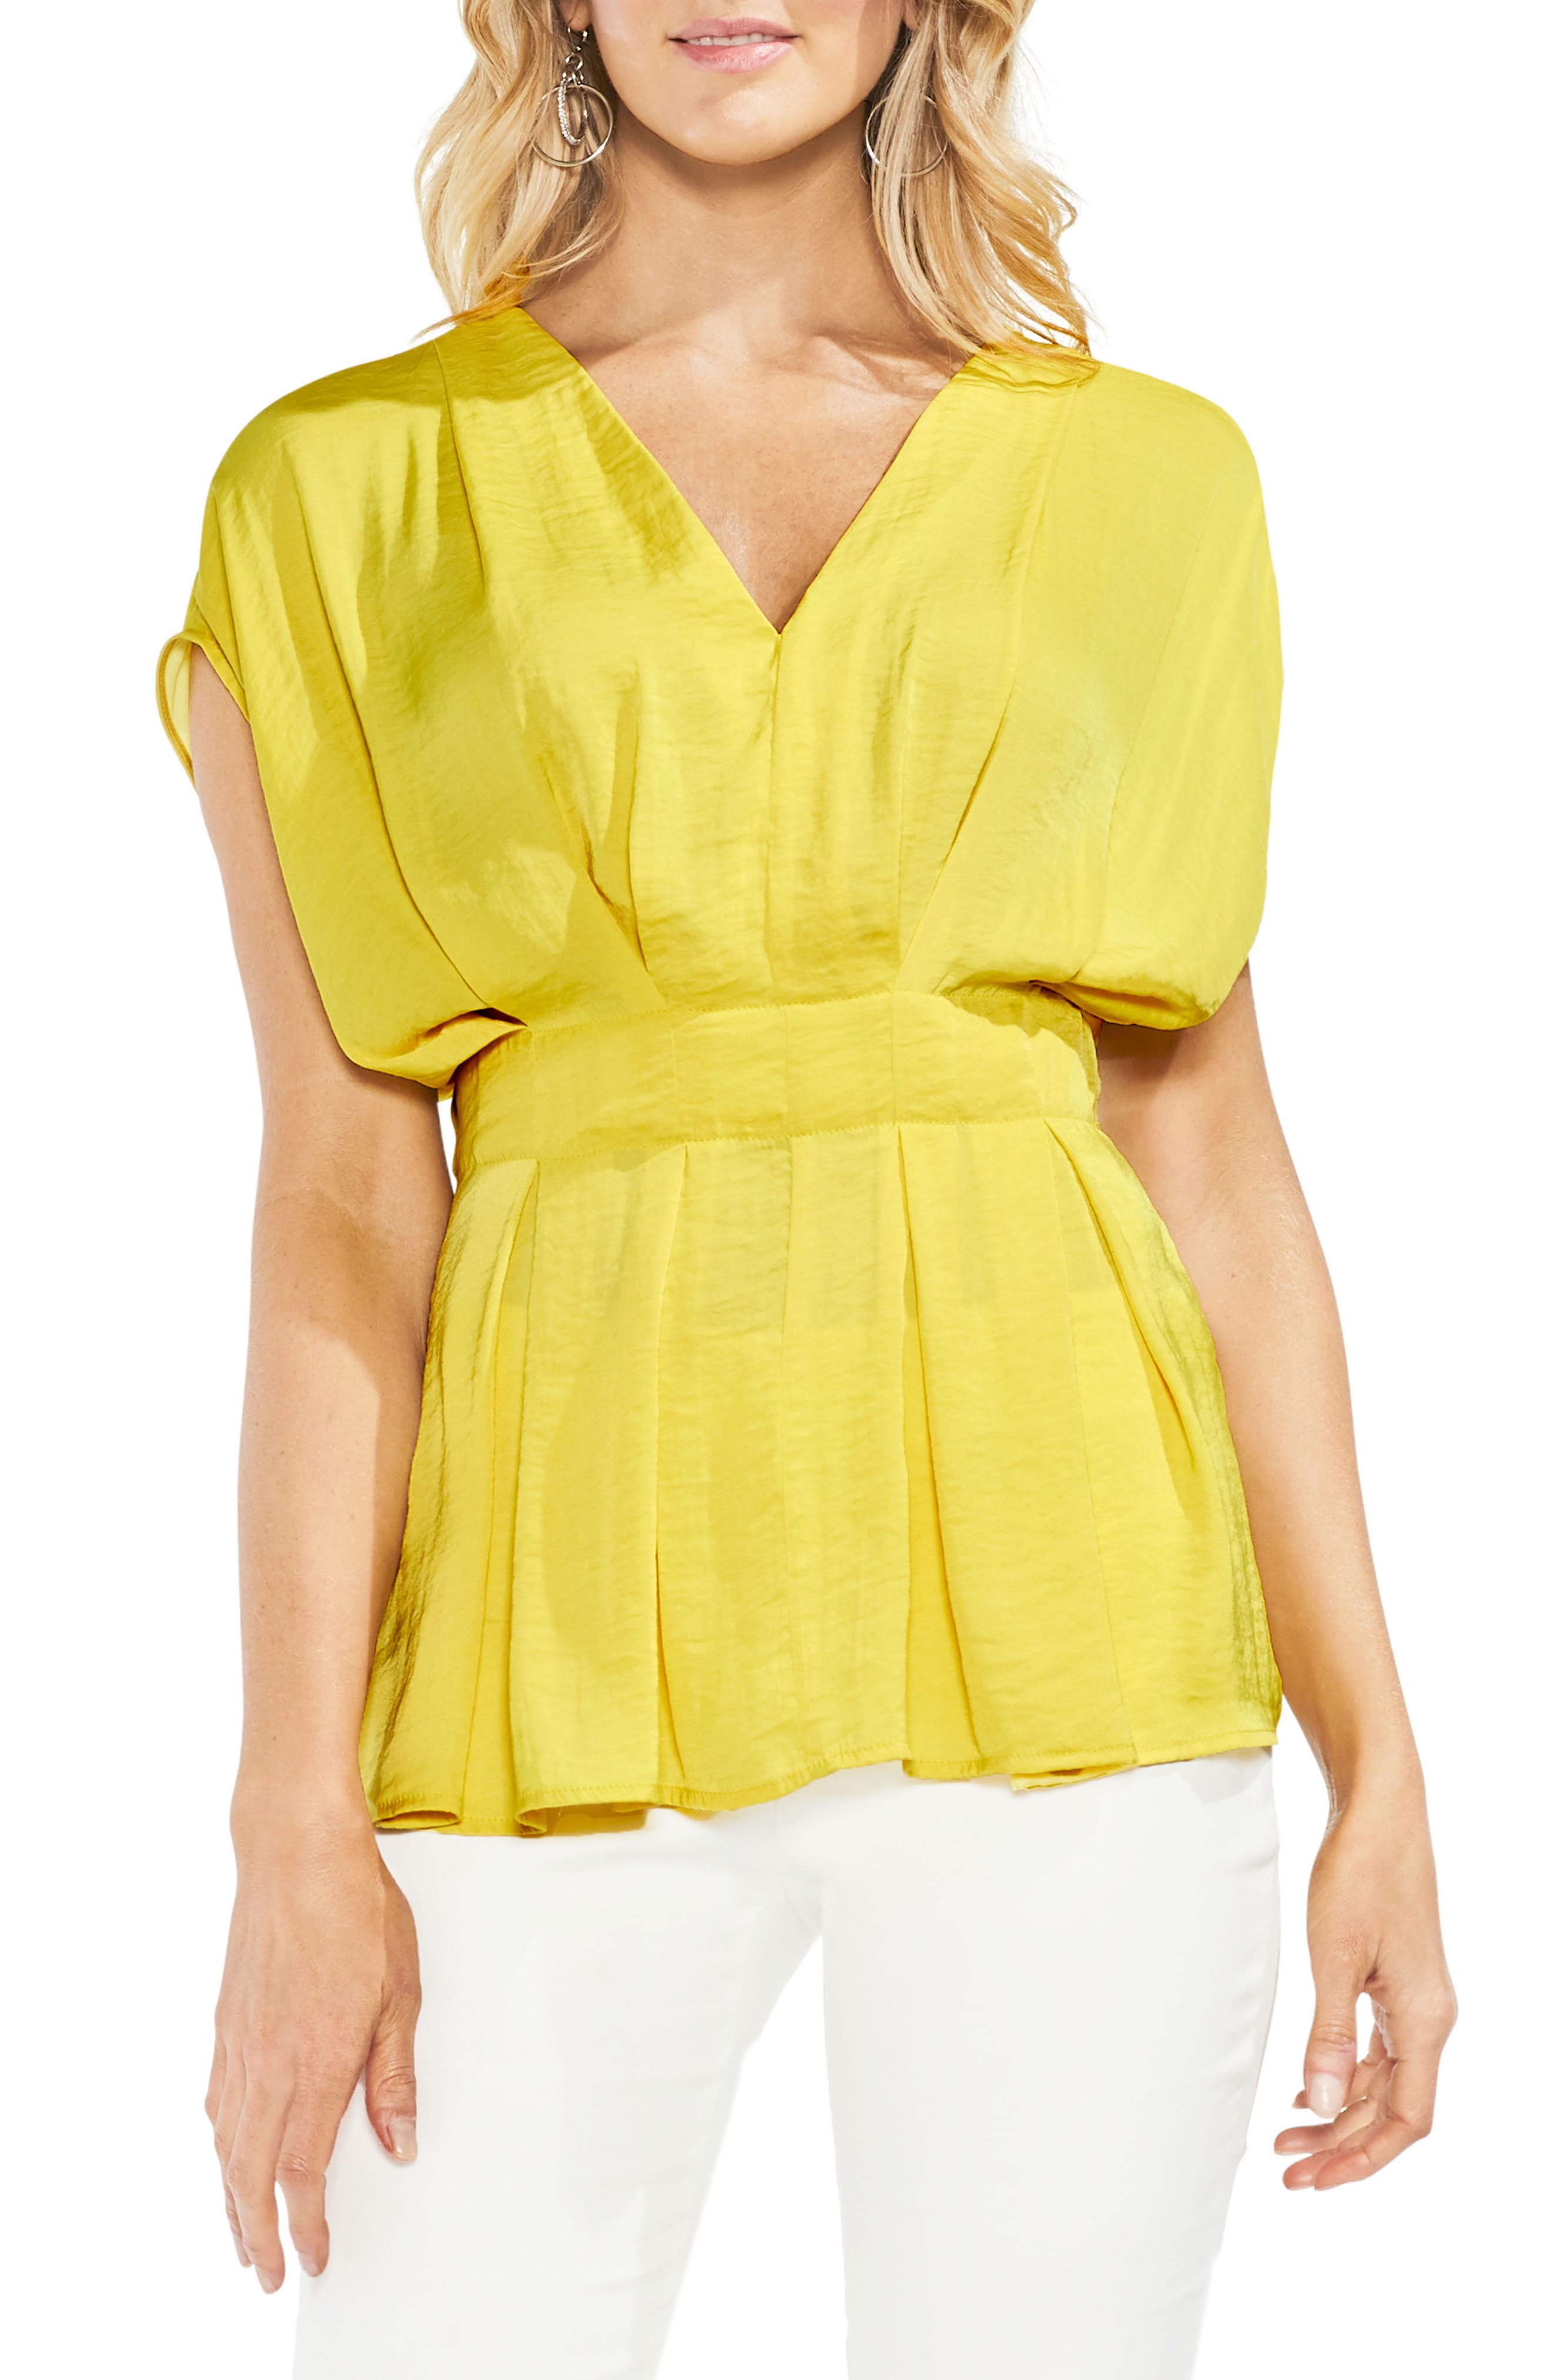 Cinched Waist Top,                             Main thumbnail 1, color,                             Pineapple